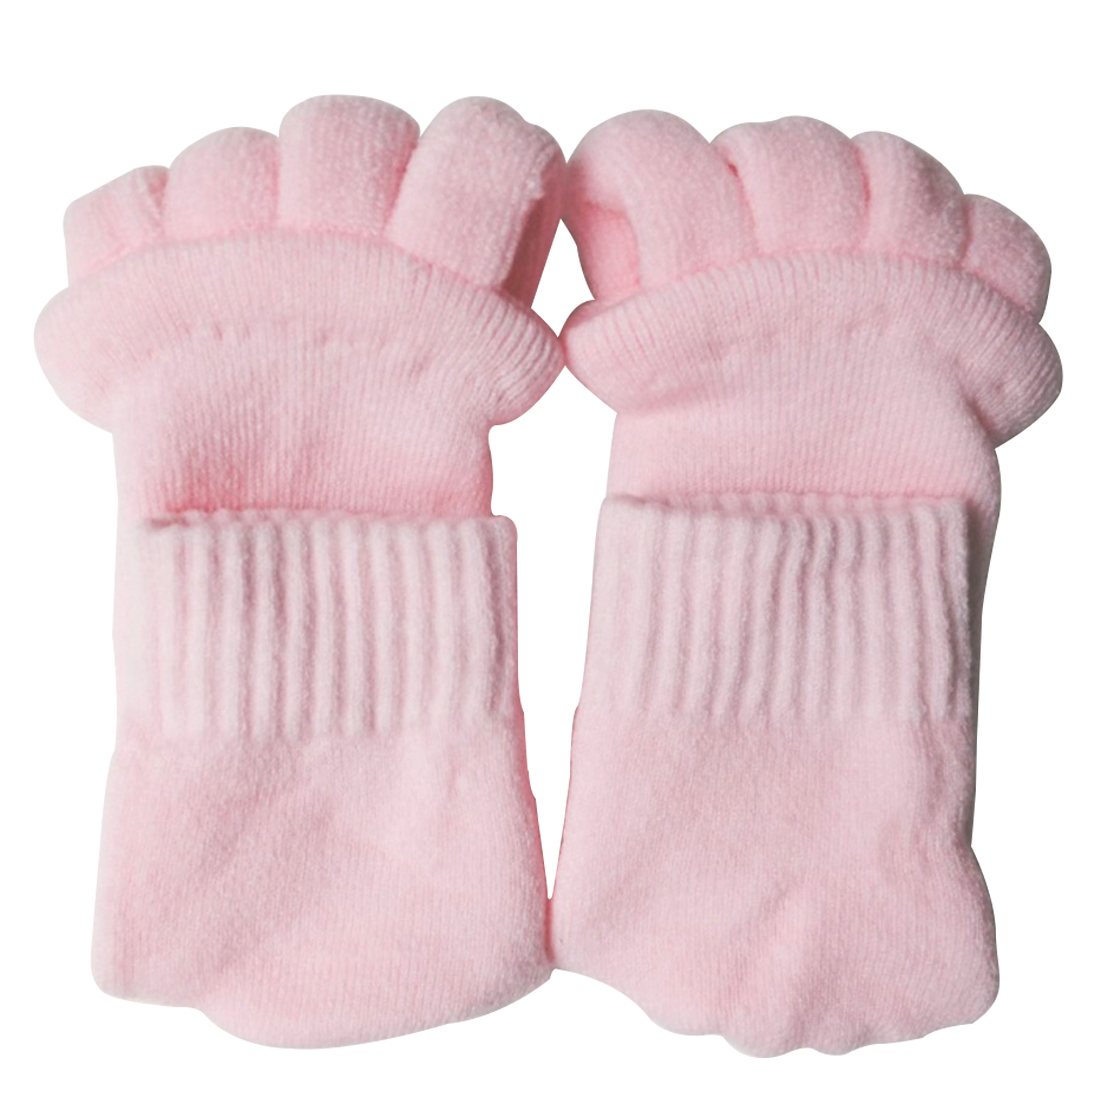 TOP 2PCS Feet Sleeping Massager Foot Alignment Toes Socks Massage Five Fingers Separator ...